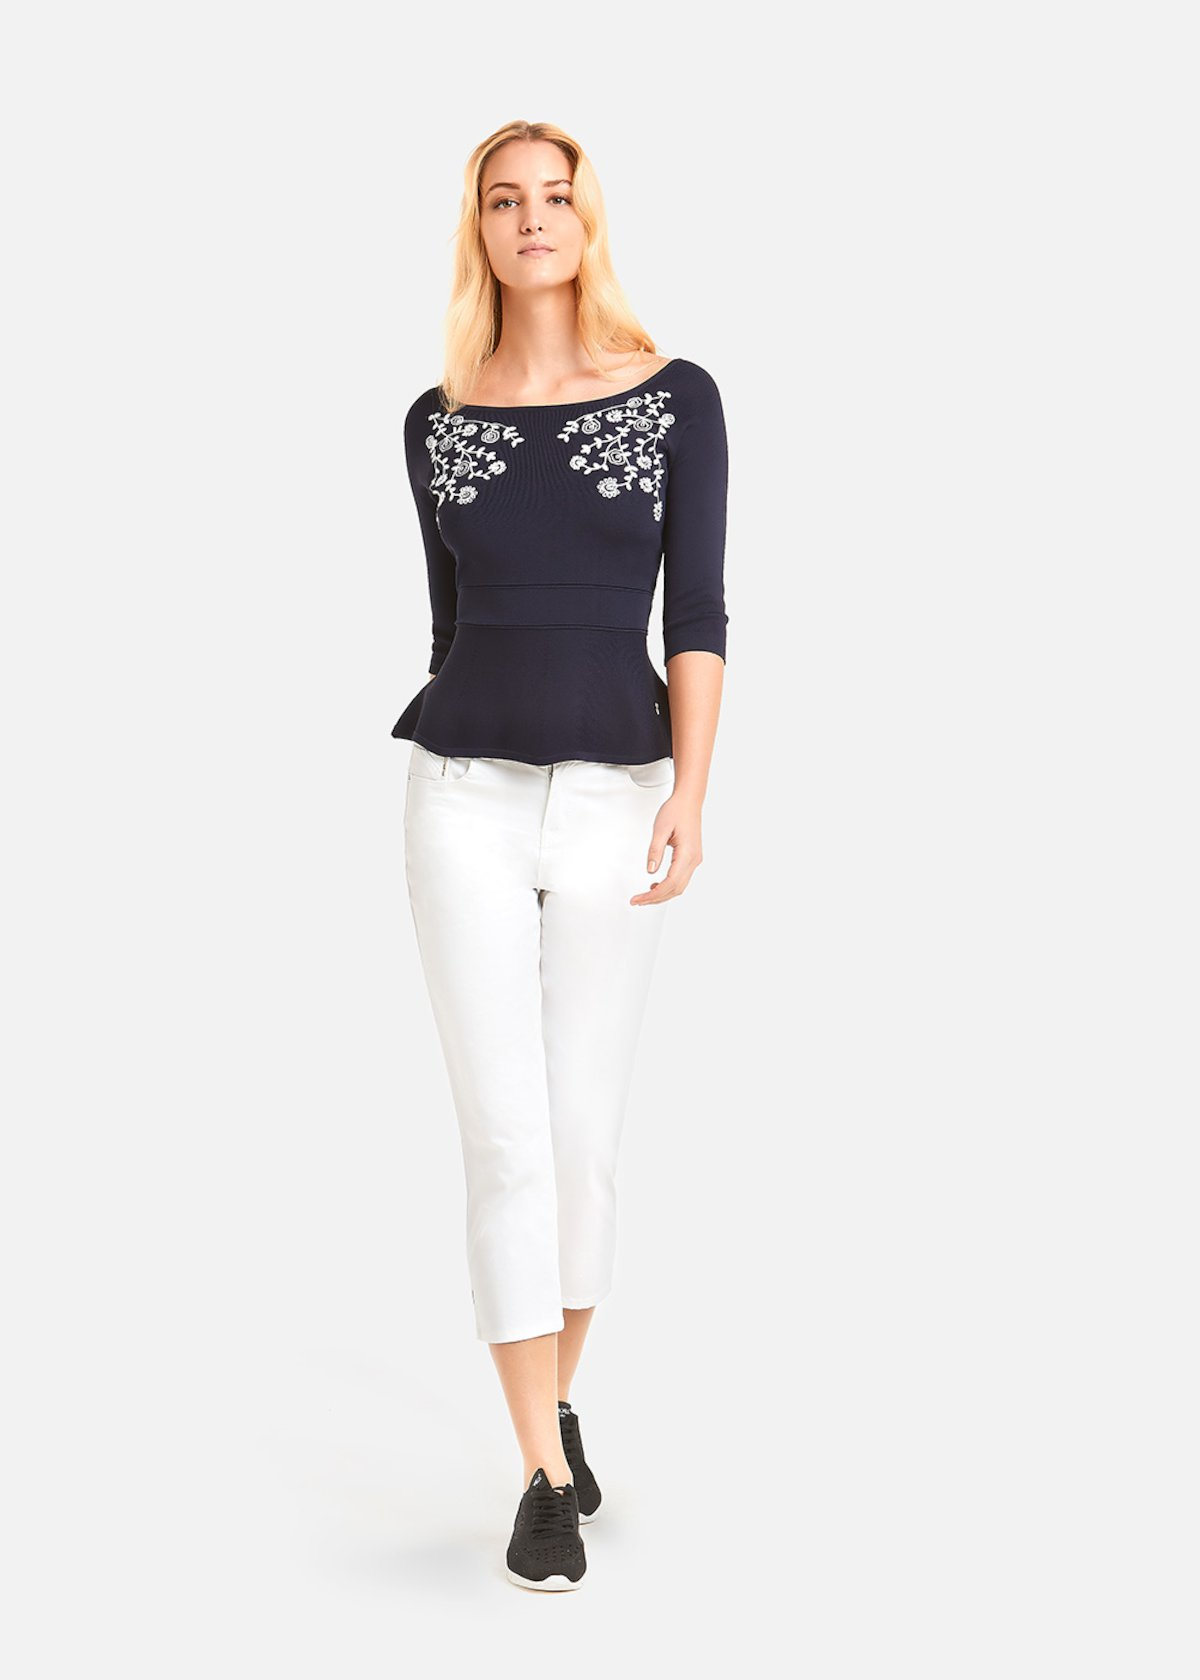 Monik sweater with floral embroidery - Medium Blue